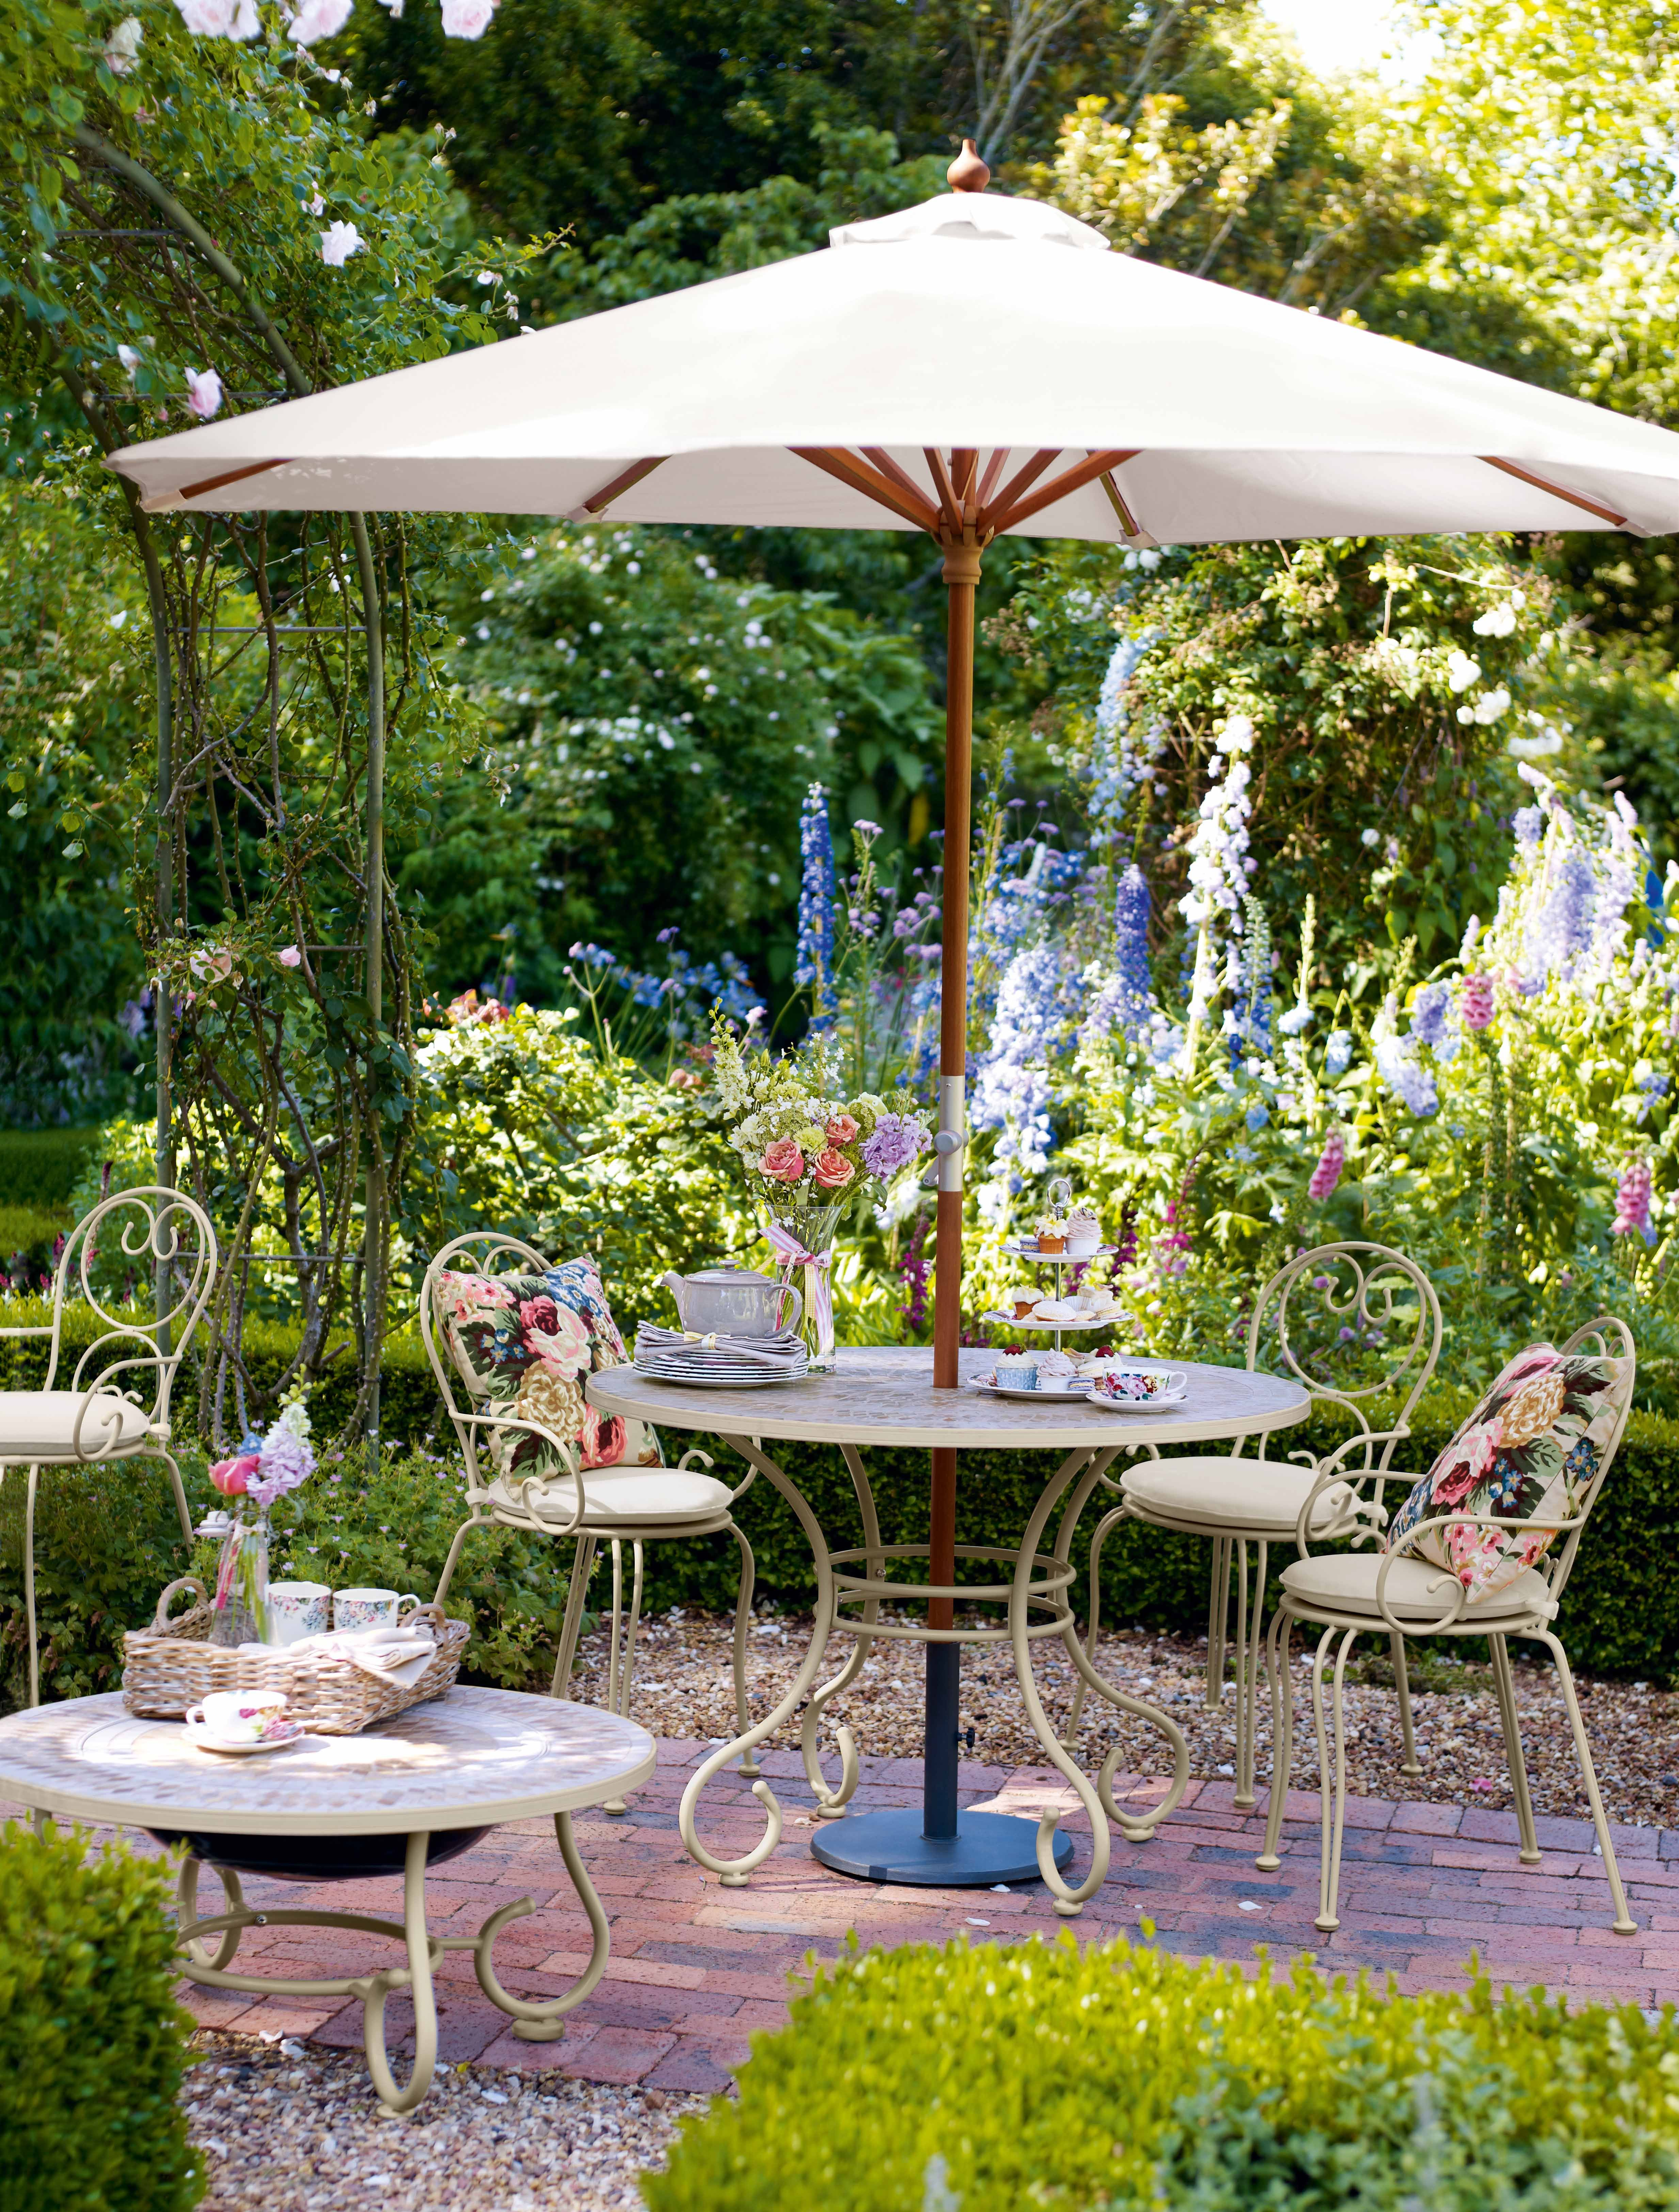 Garden Walk Dining: A Walk Through The Garden